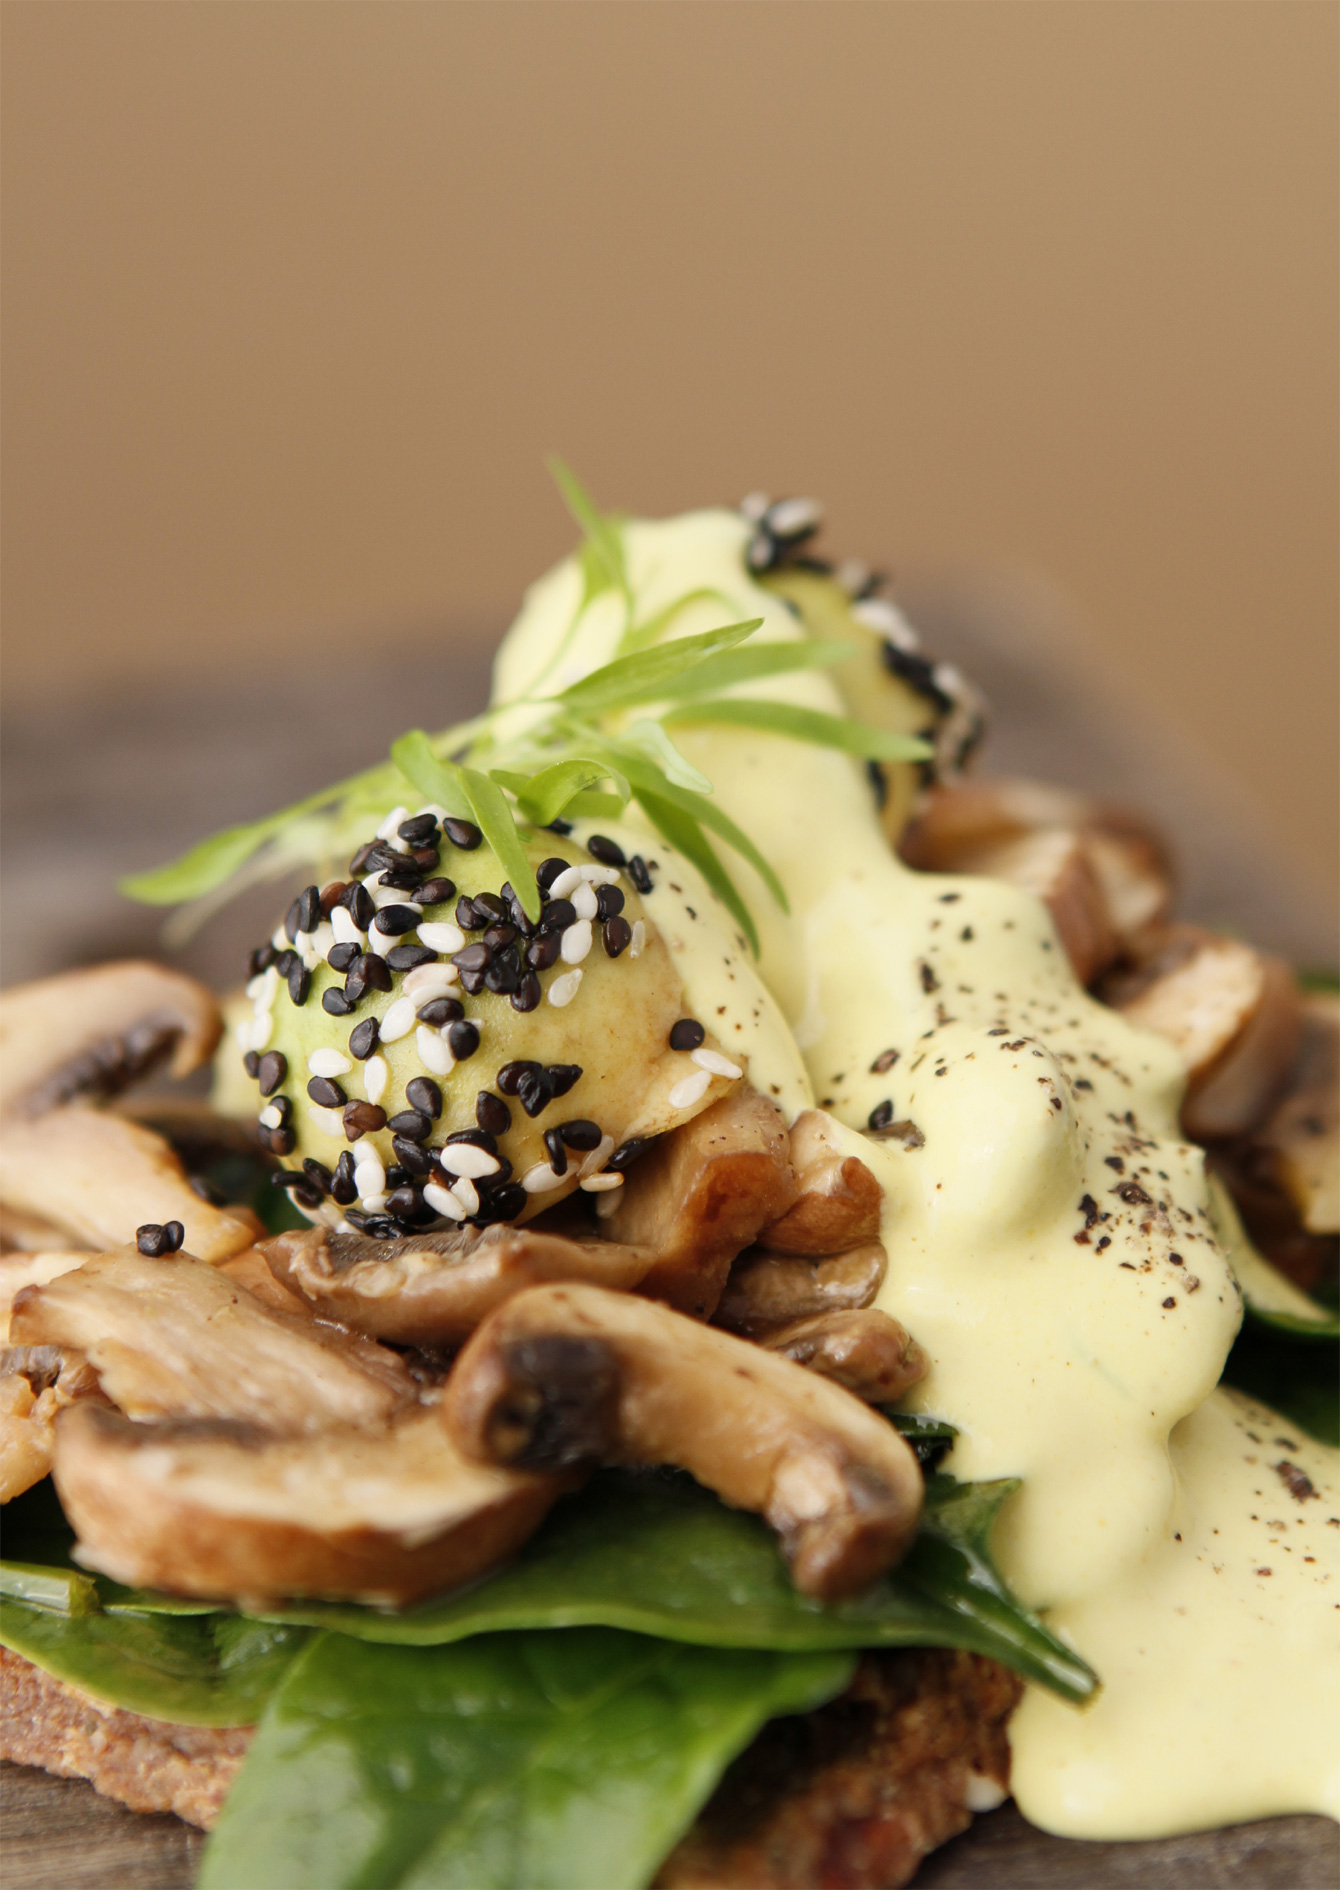 raw-vegan-mushrooms-maz-valcorza-sydney-vegan